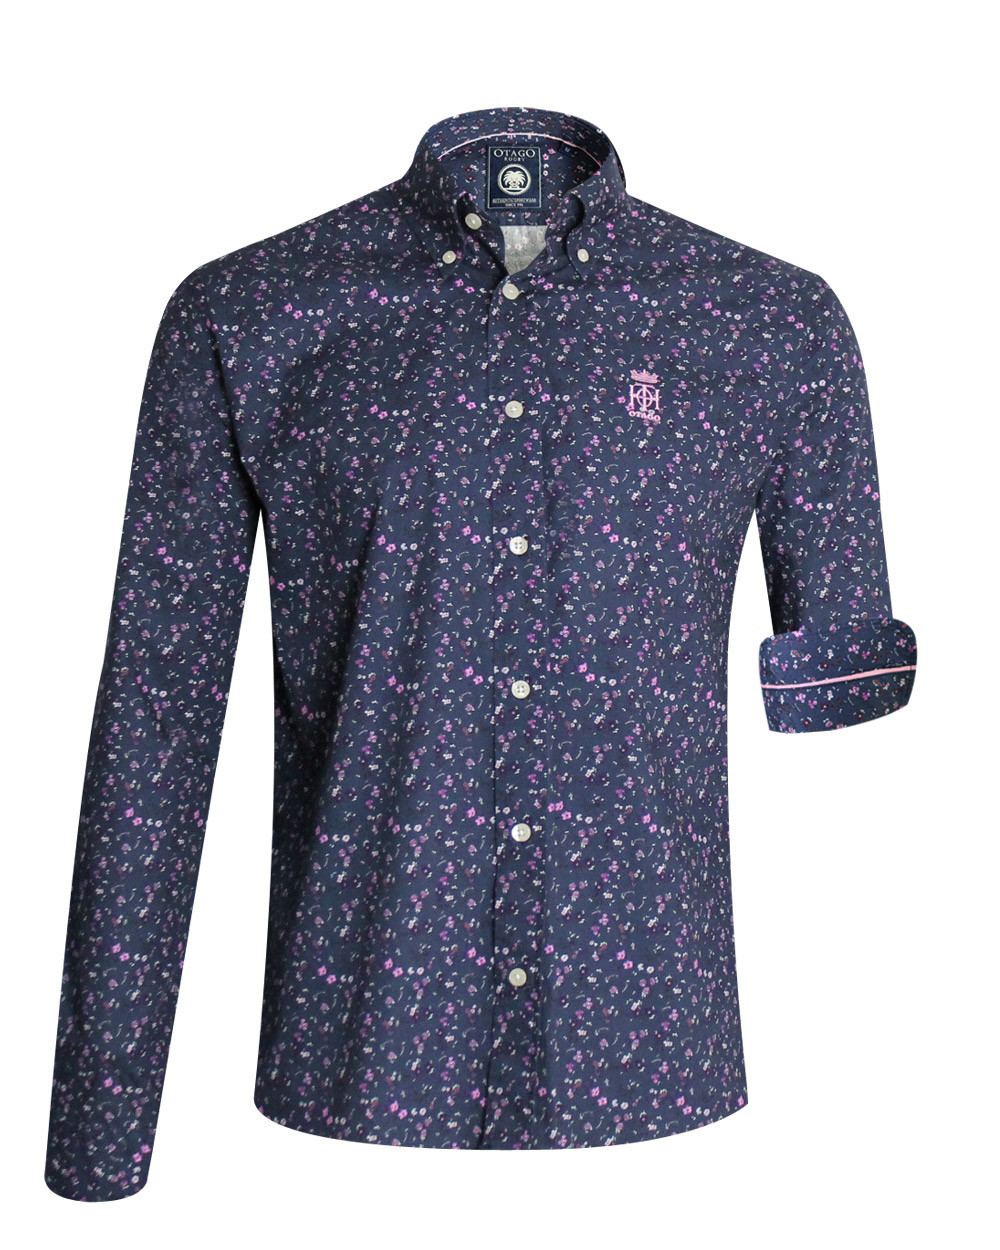 Chemise 111 manches longues Otago rugby bleu marine homme